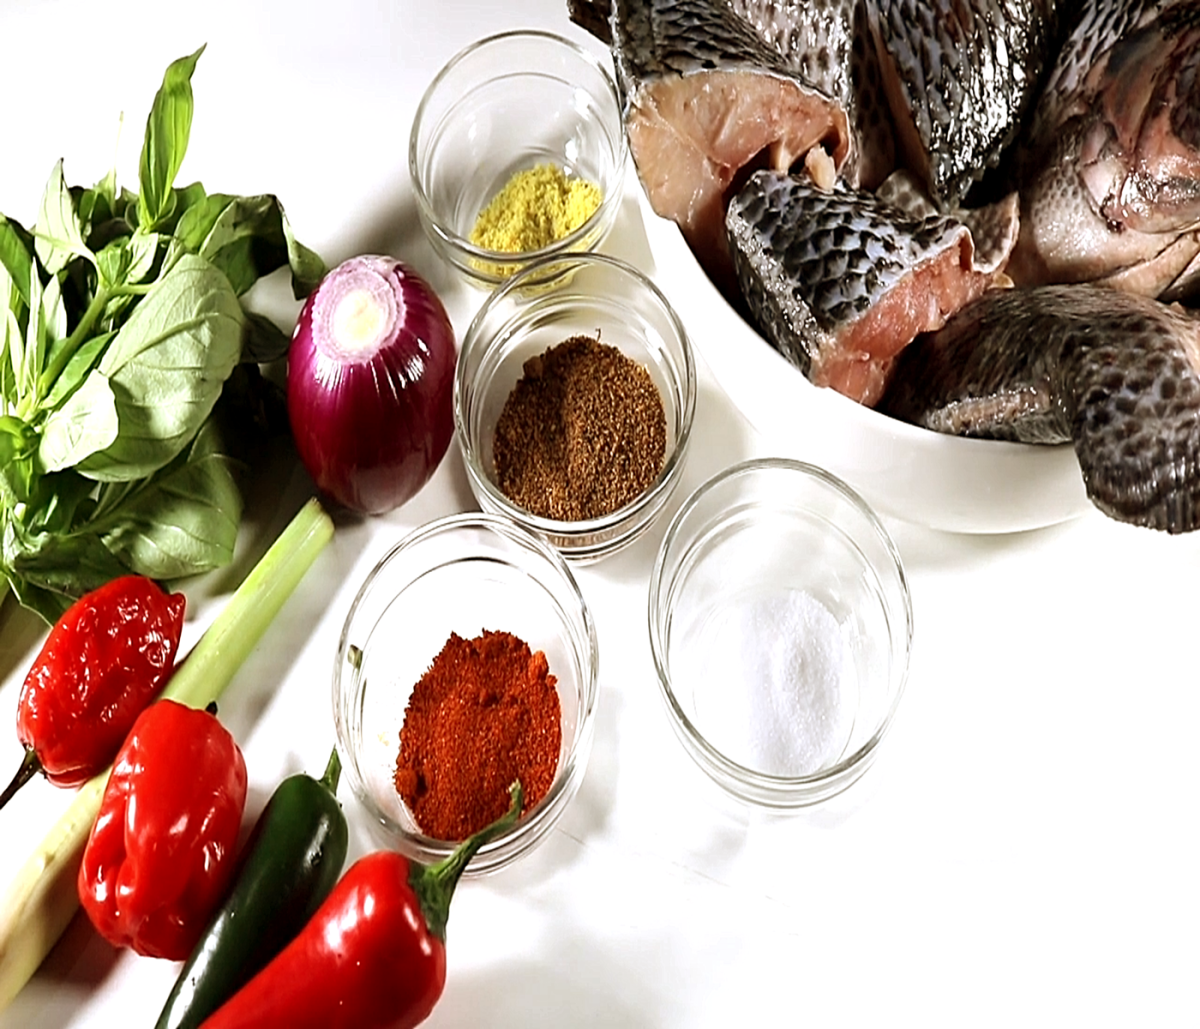 Clockwise from bottom to top – Red chilies, green bird's eye chilies, scotch bonnet peppers, lemongrass, fresh bay leaf, red onion, spices and seasonings, and Tilapia fish